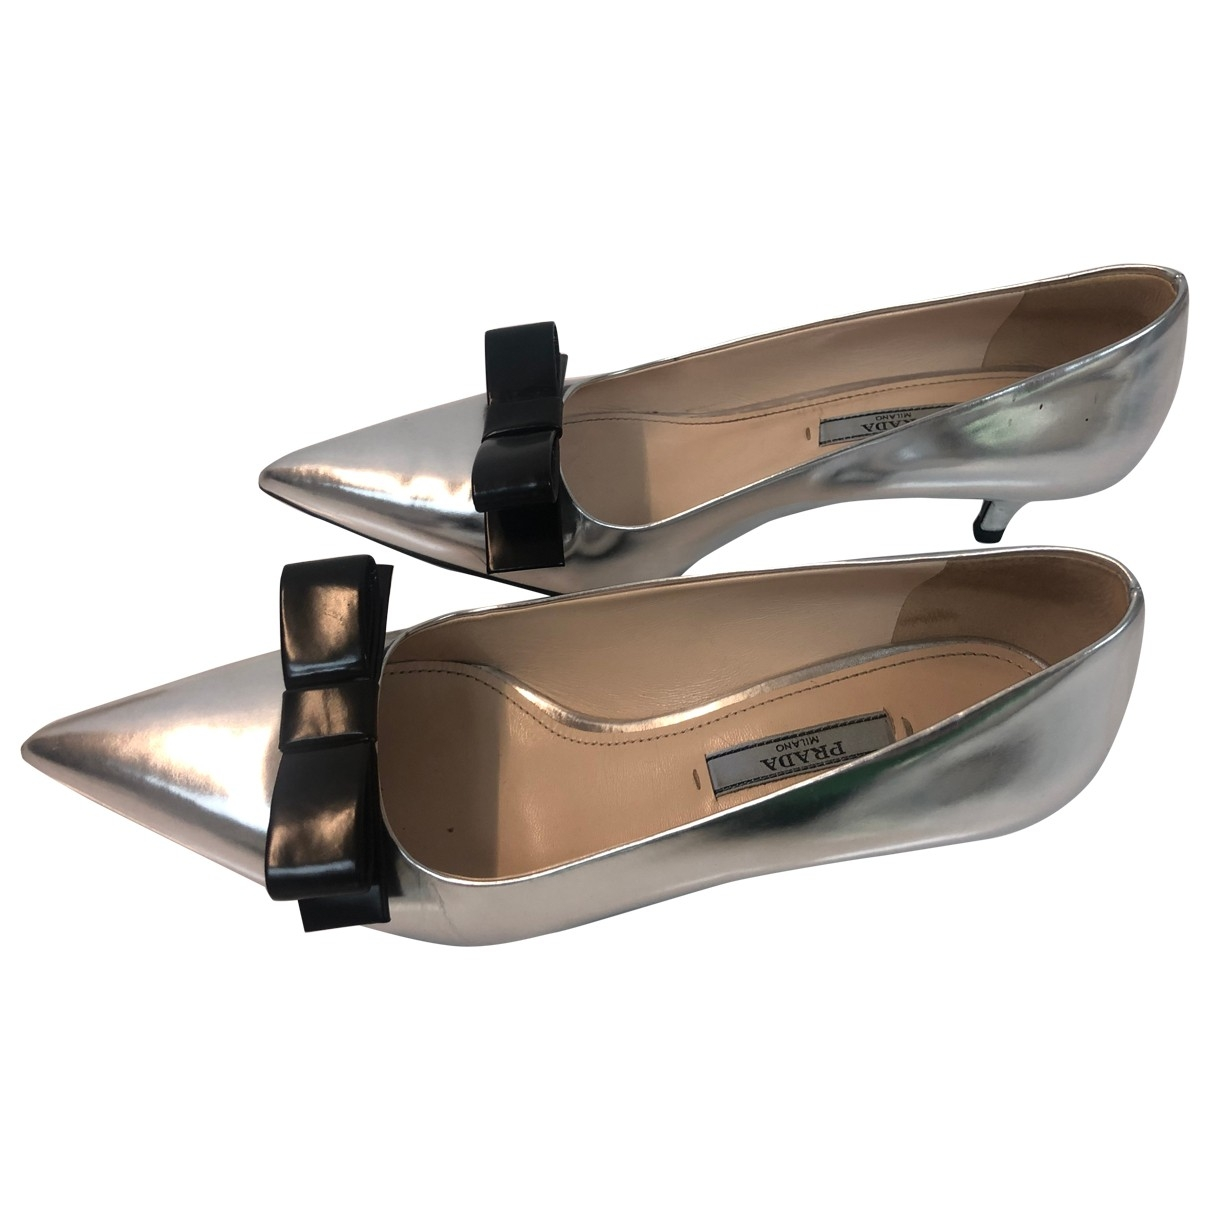 Prada \N Metallic Patent leather Heels for Women 36 EU